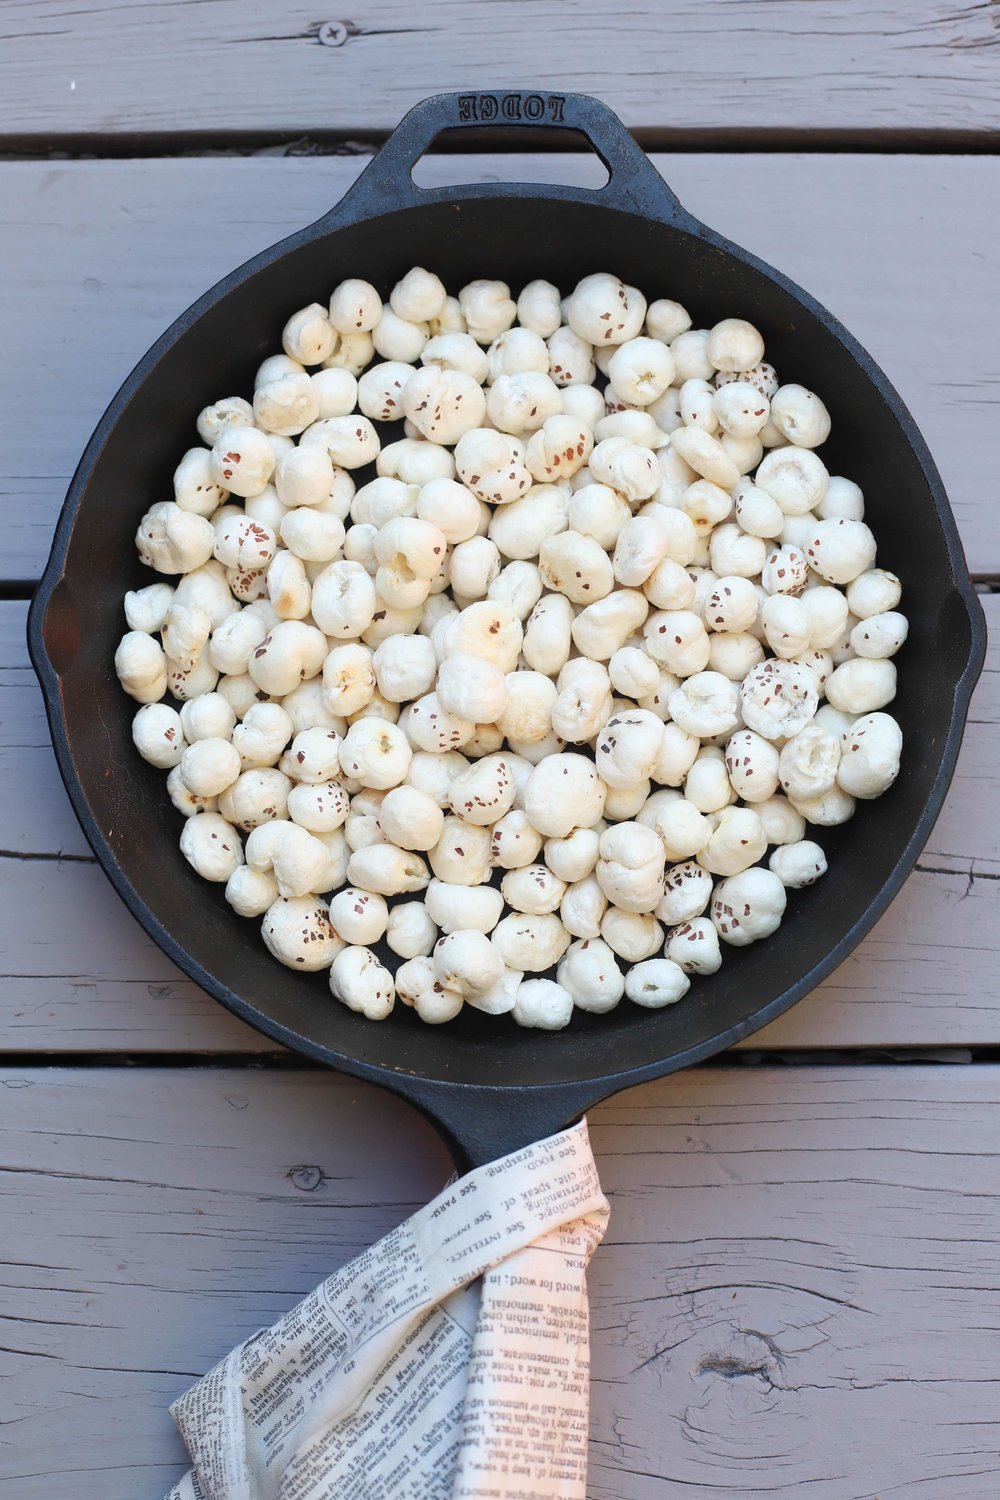 Roasted Makhana Lotus Seeds Foxnuts Food Pleasure Health